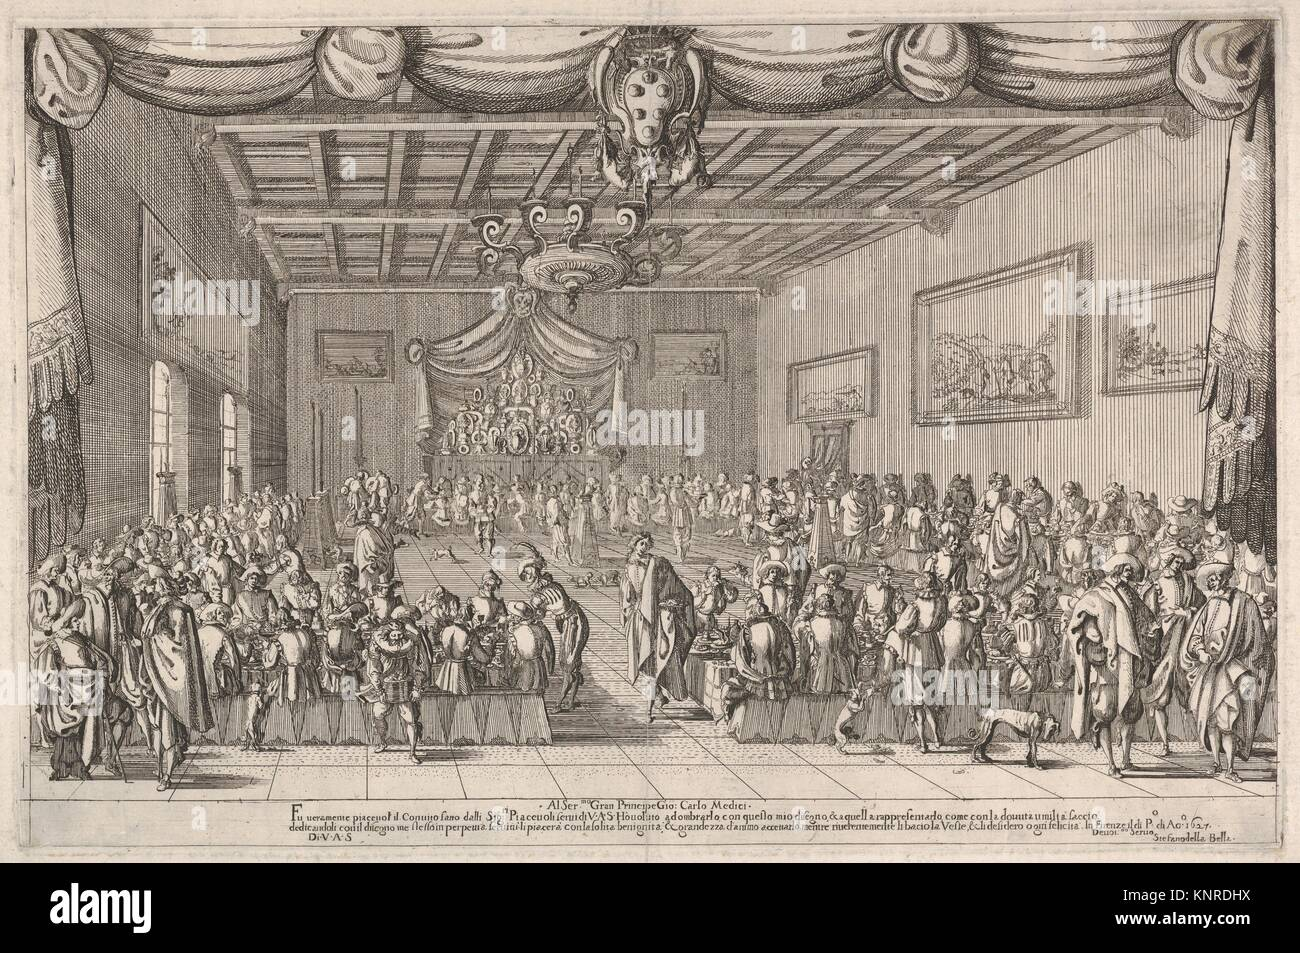 Banquet of the Piacevoli, various men are seated at long tables around the perimeter of a large room, a man seated - Stock Image